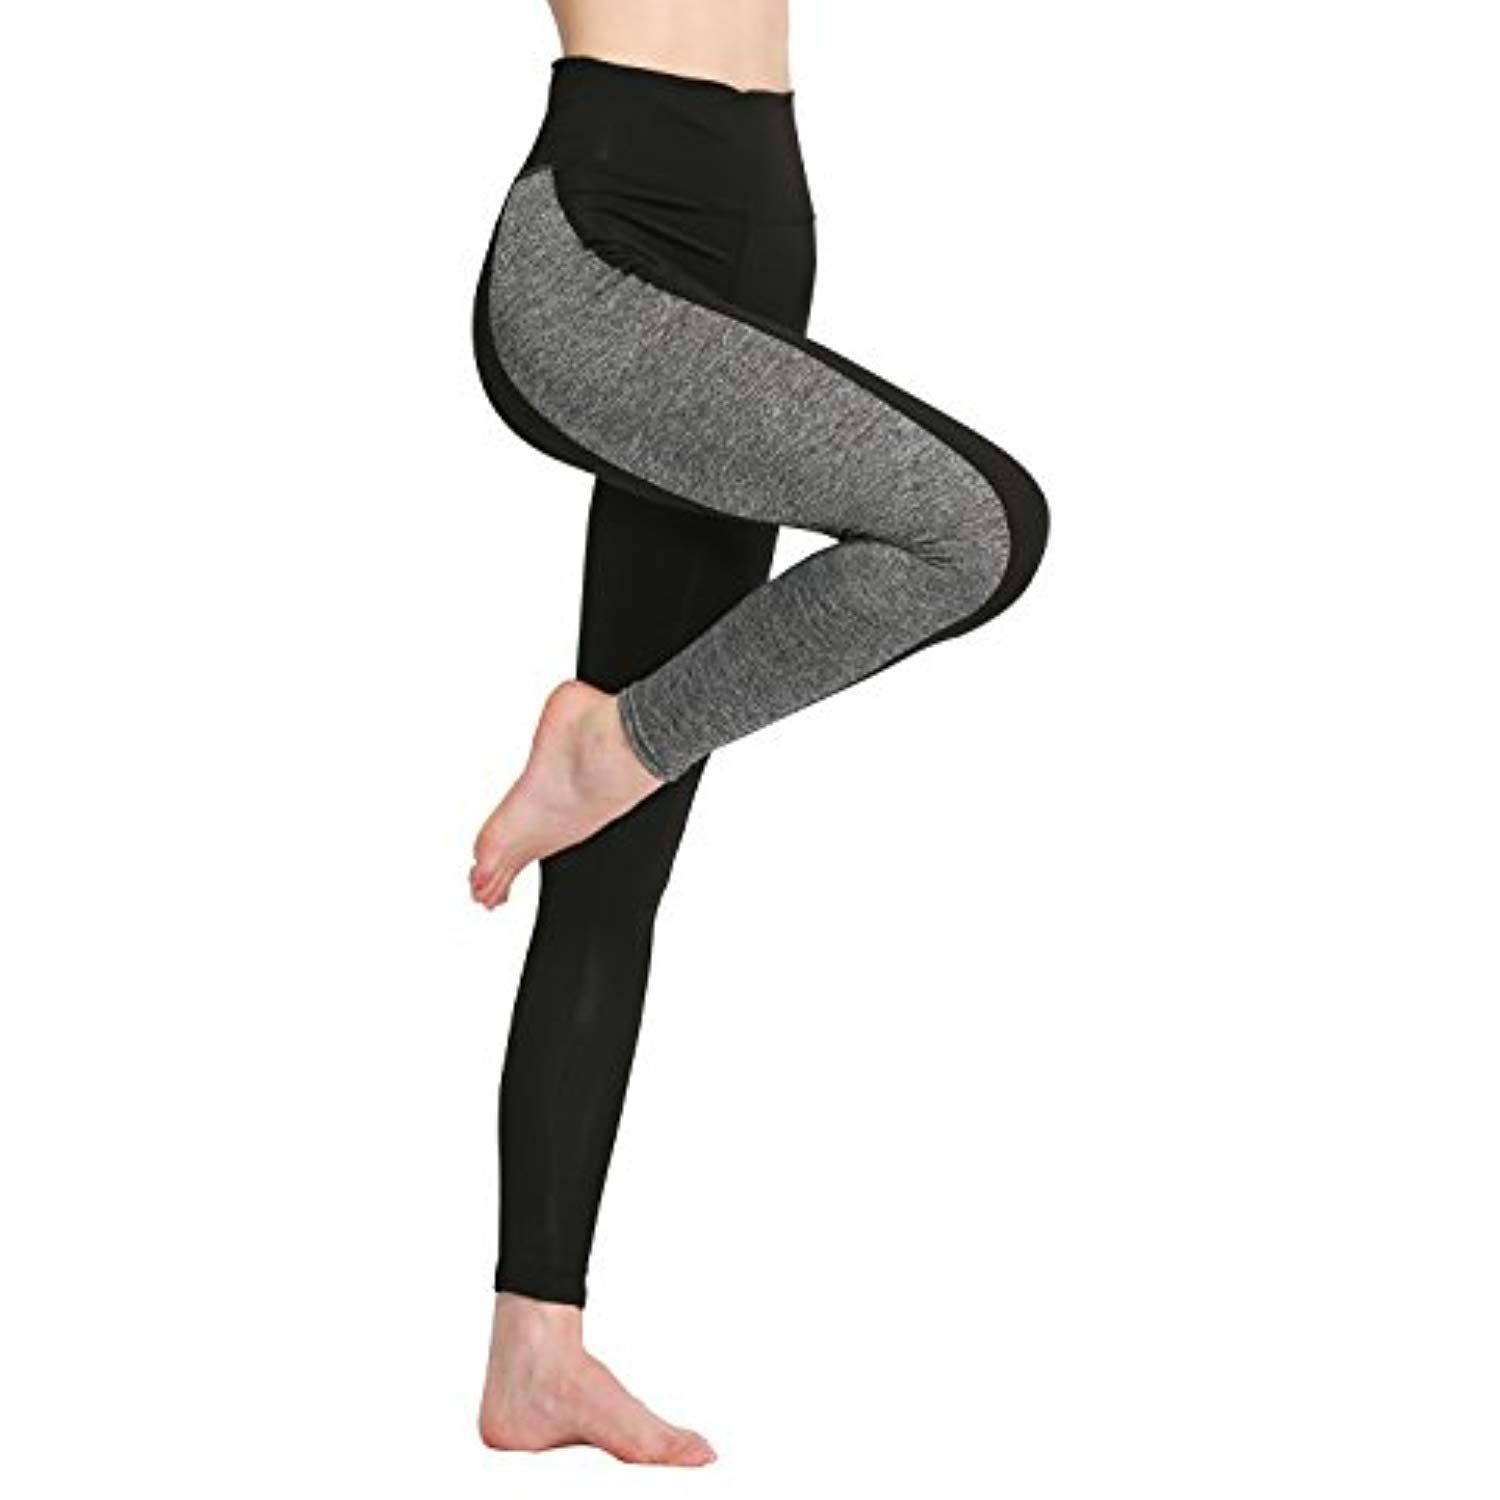 b18afc4064025f DrKr Womens Yoga Pants Workout,High Waist Soft Running Fitness Stretch  Exercise Sports Athletic Gym Yoga Leggings for Women ** Check out this  great product.